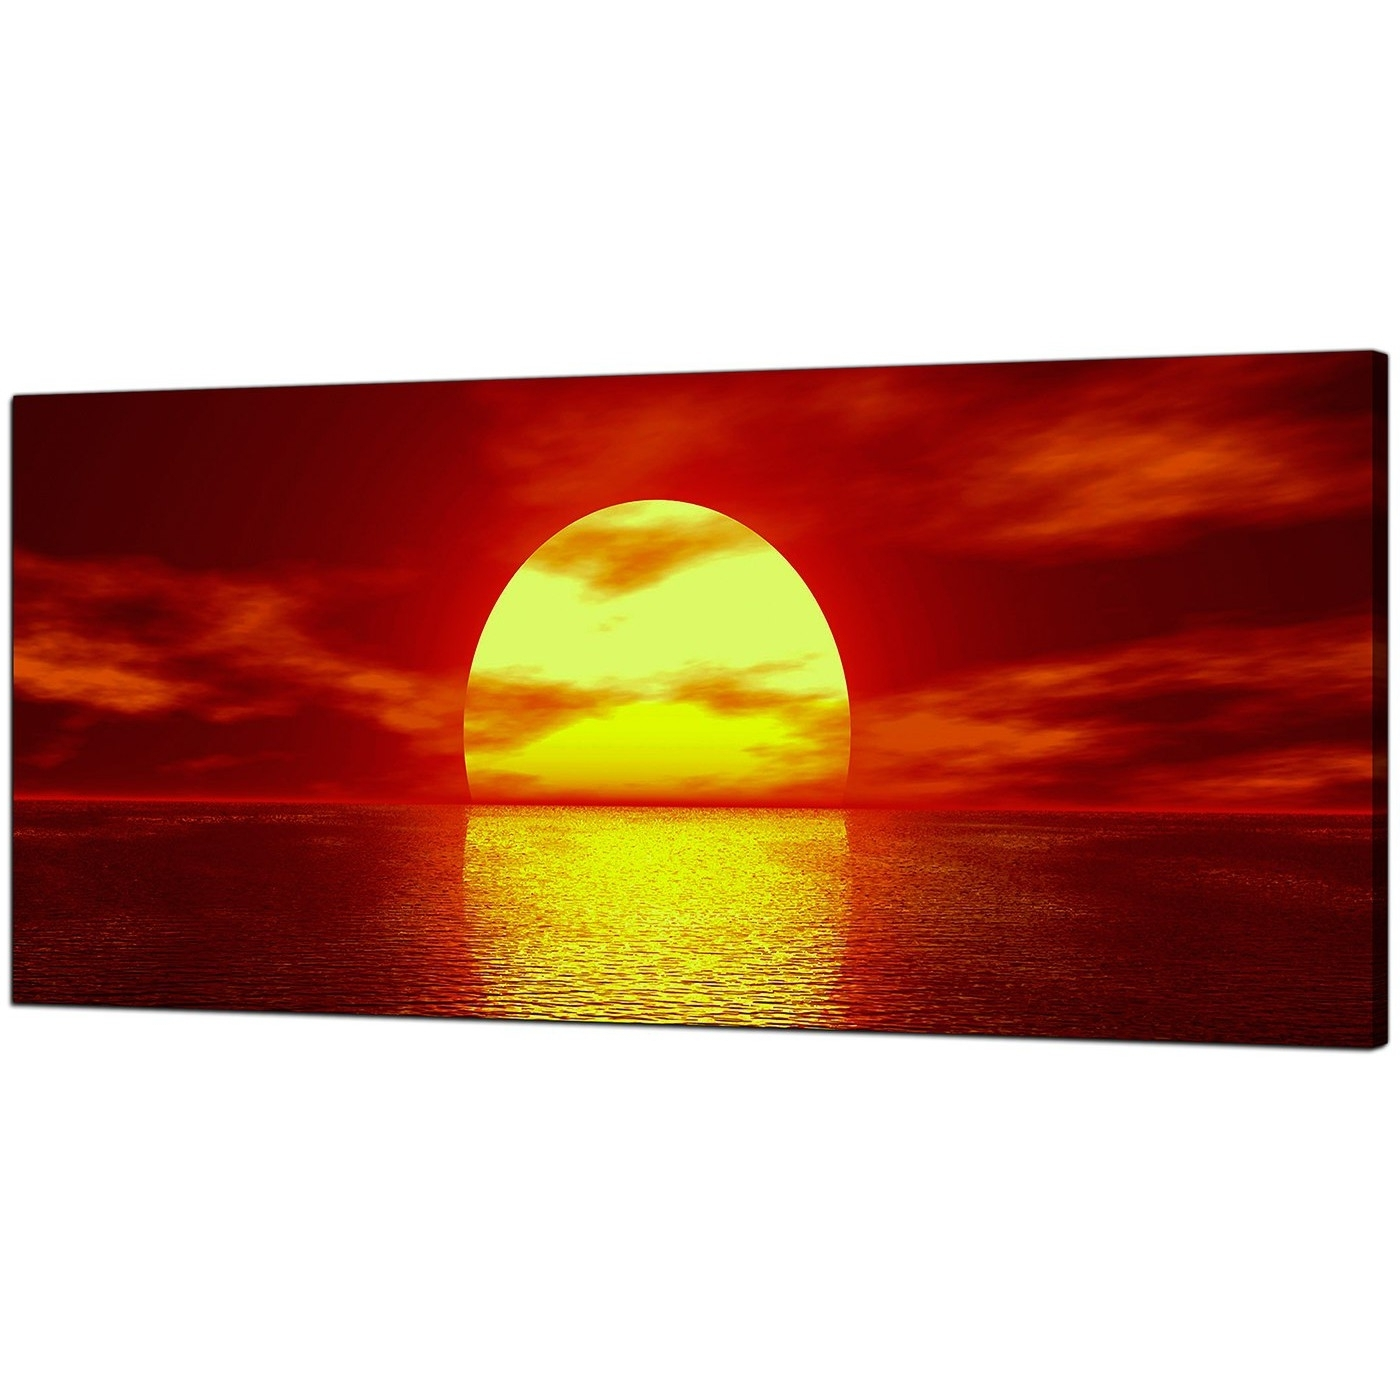 Fashionable Canvas Wall Art In Red In Modern Red Canvas Wall Art Of A Sea Sunset (View 6 of 15)